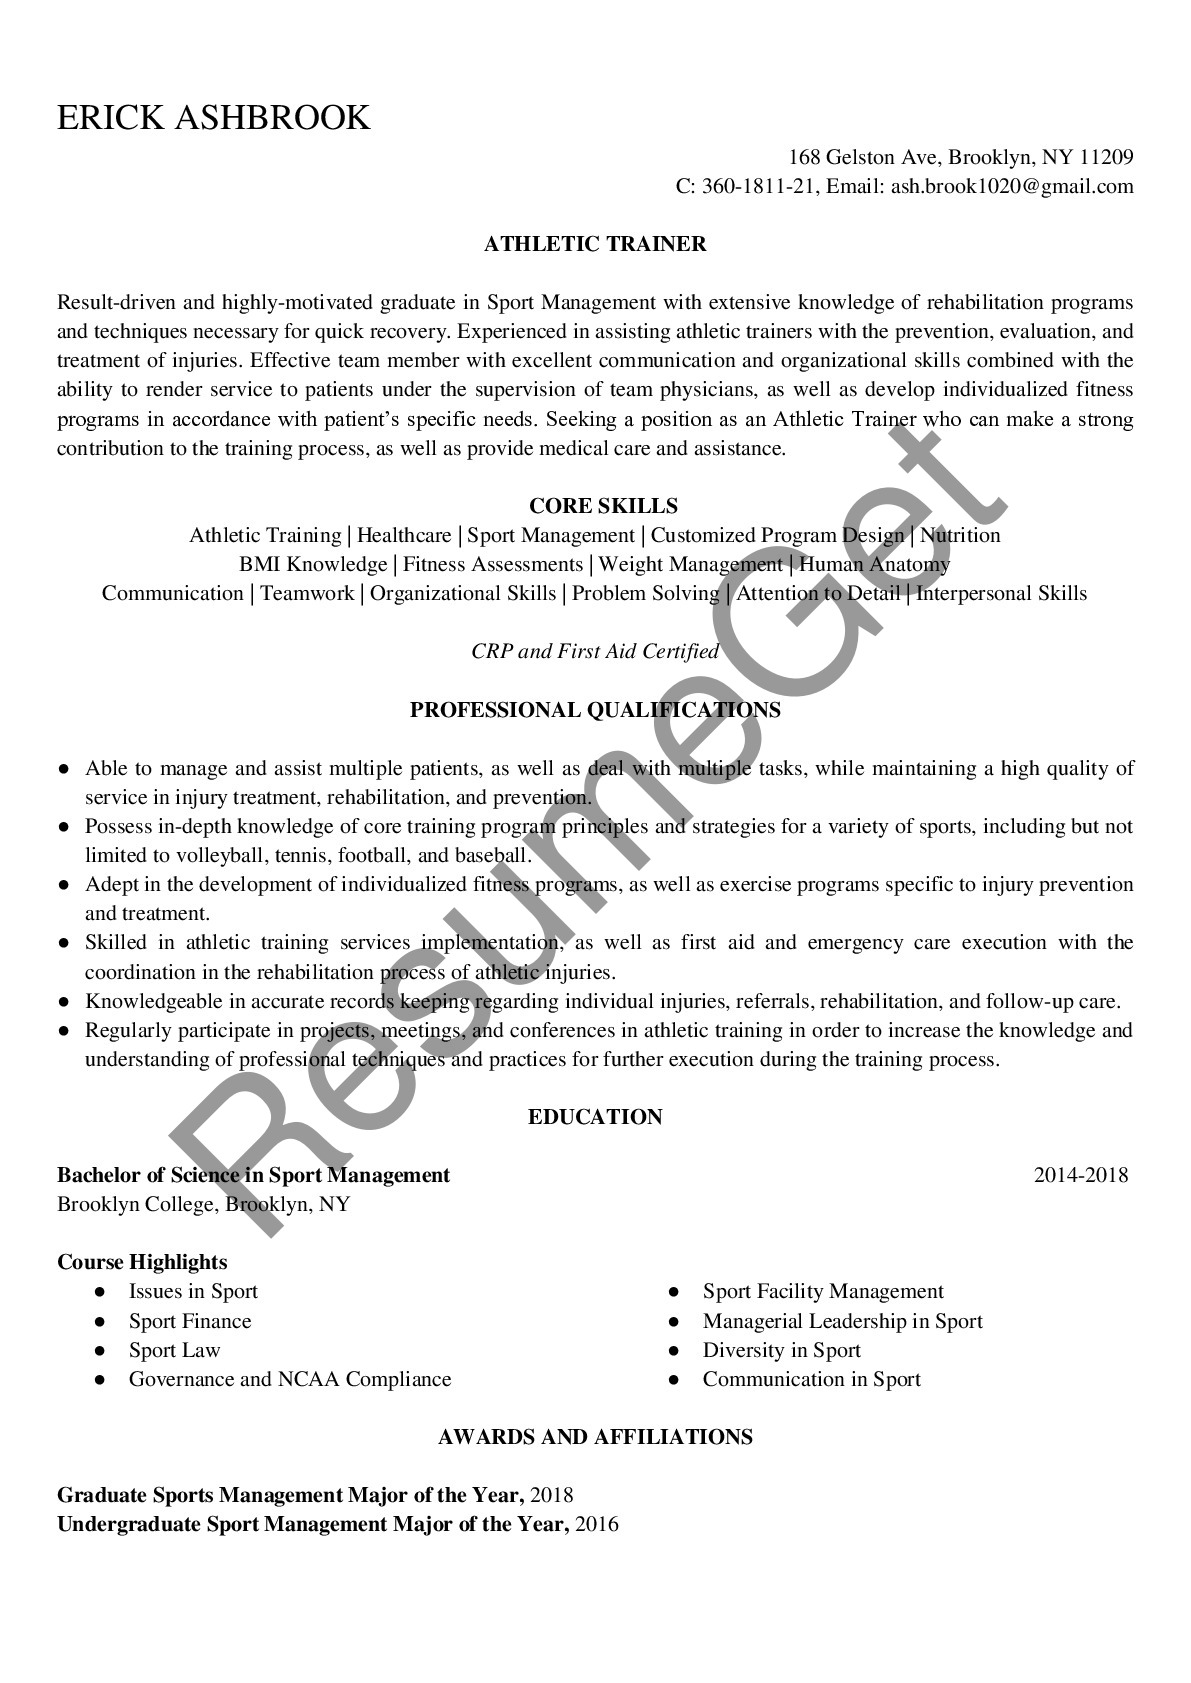 athletic trainer resume examples resumeget sample financial services professional are Resume Athletic Trainer Resume Sample